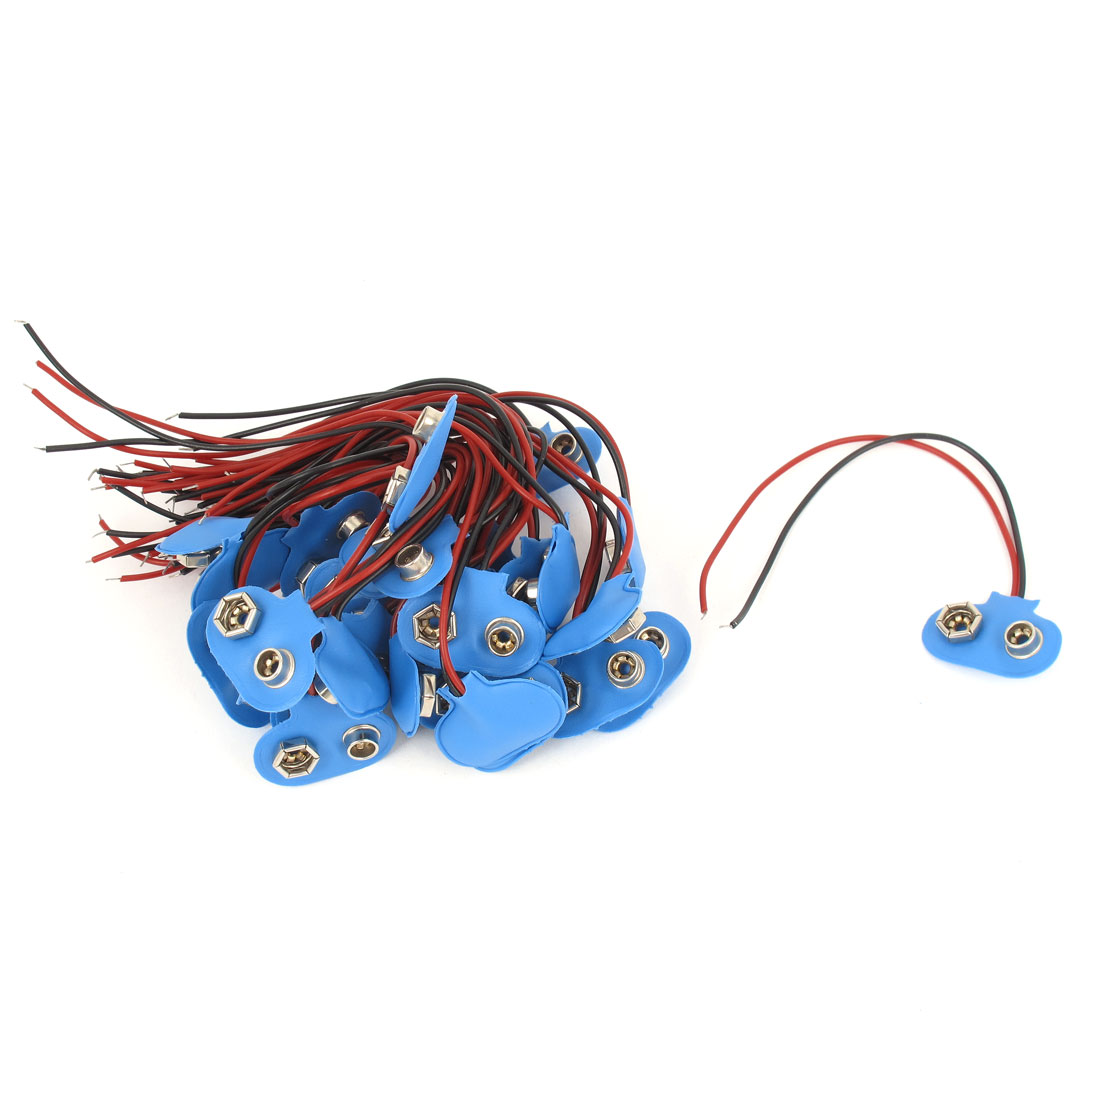 30pcs 9V Battery Snap Connector Clip Lead Cord Wires Holder Blue15cm Long